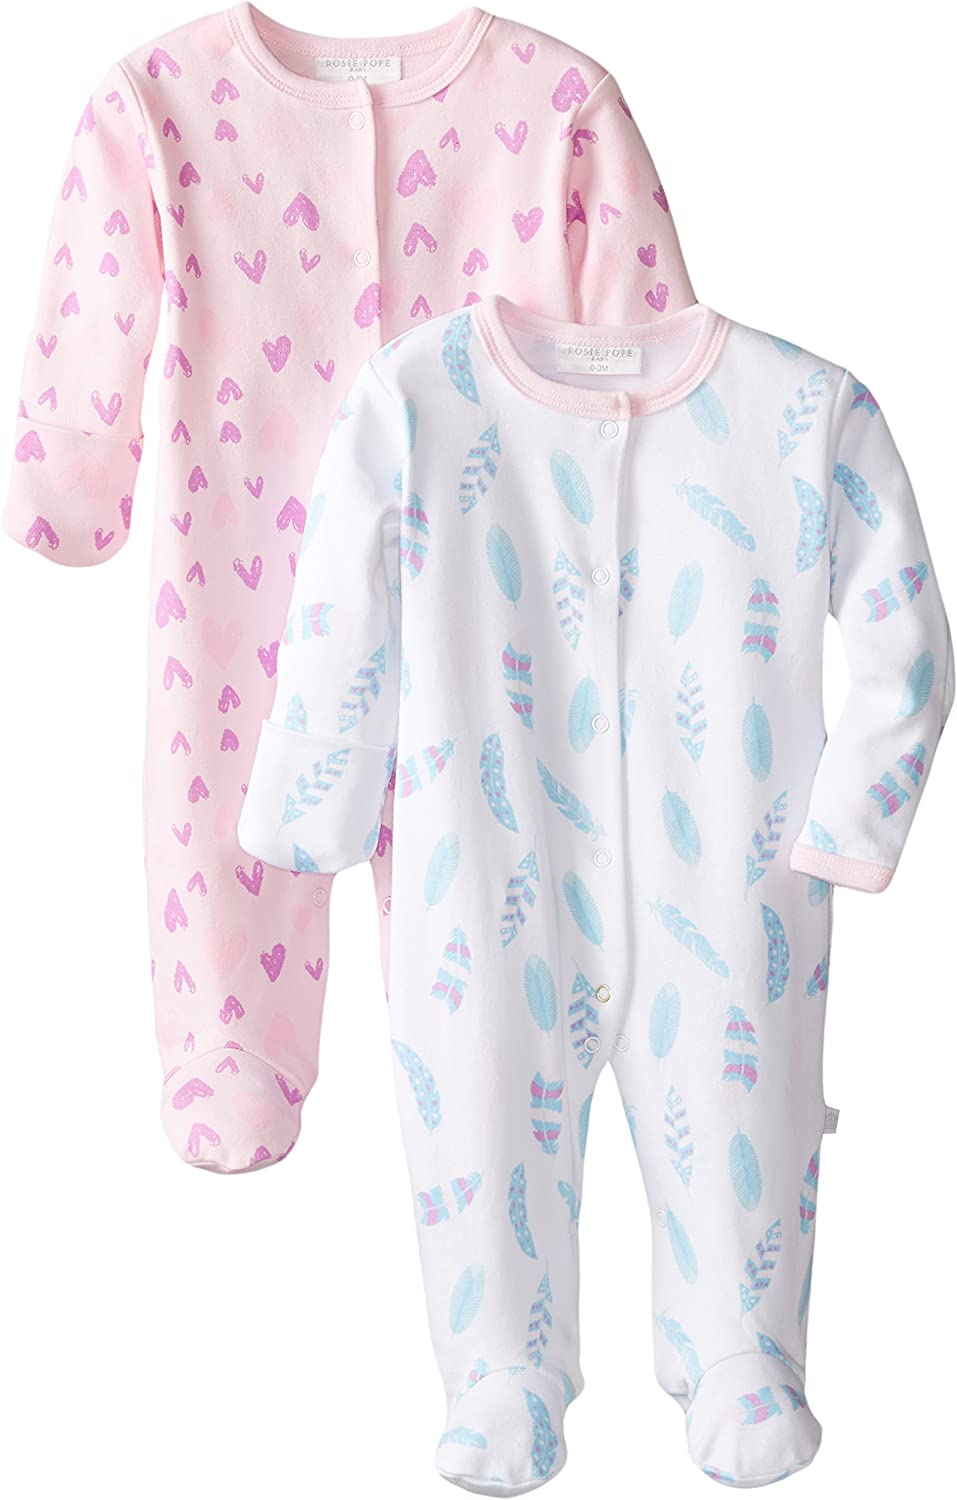 Rosie Pope Toddler Kids Baby Girls 2 Pack Coveralls